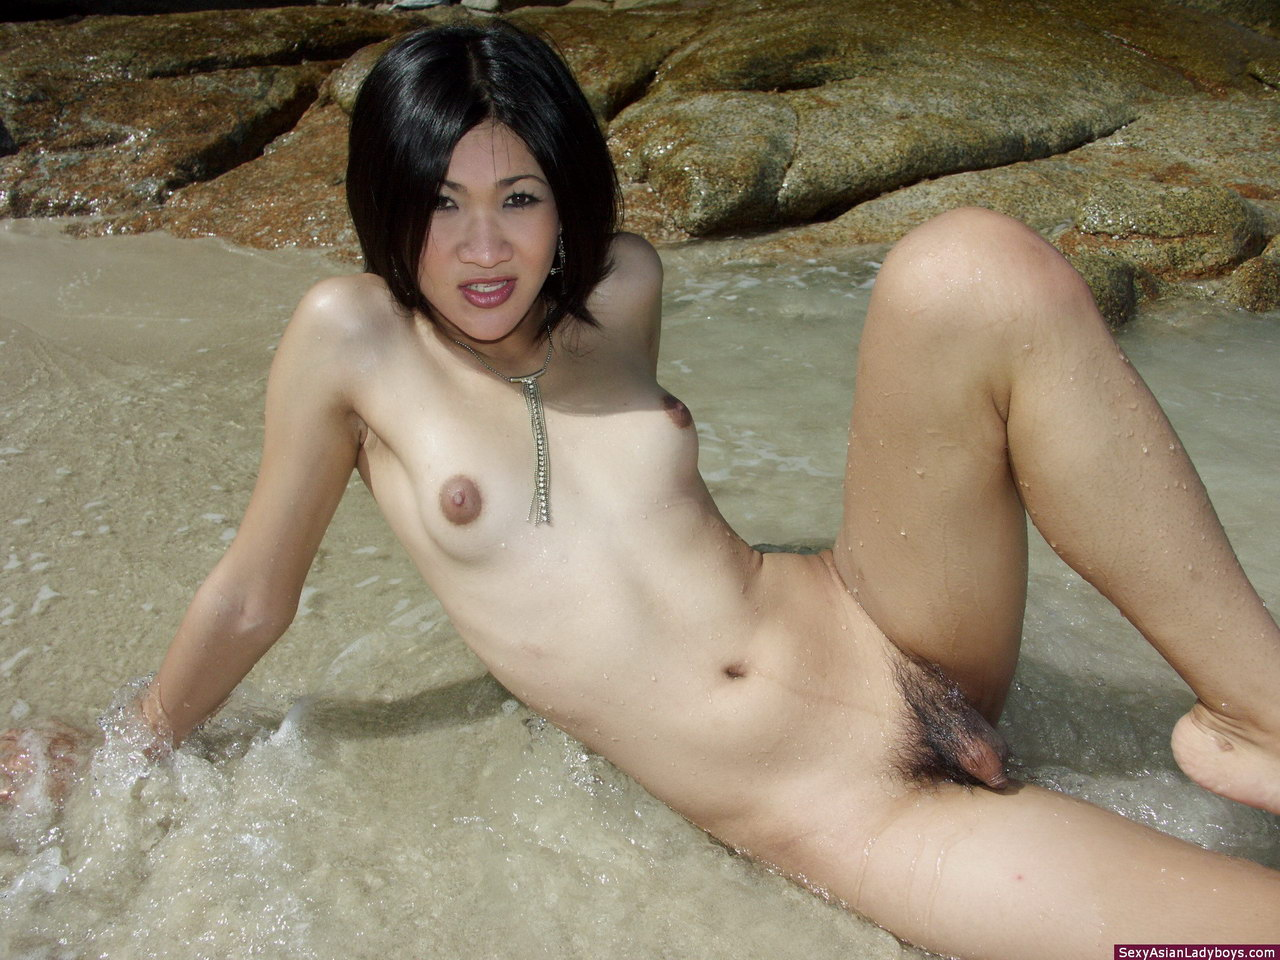 naked ladyboys having sex on the beach